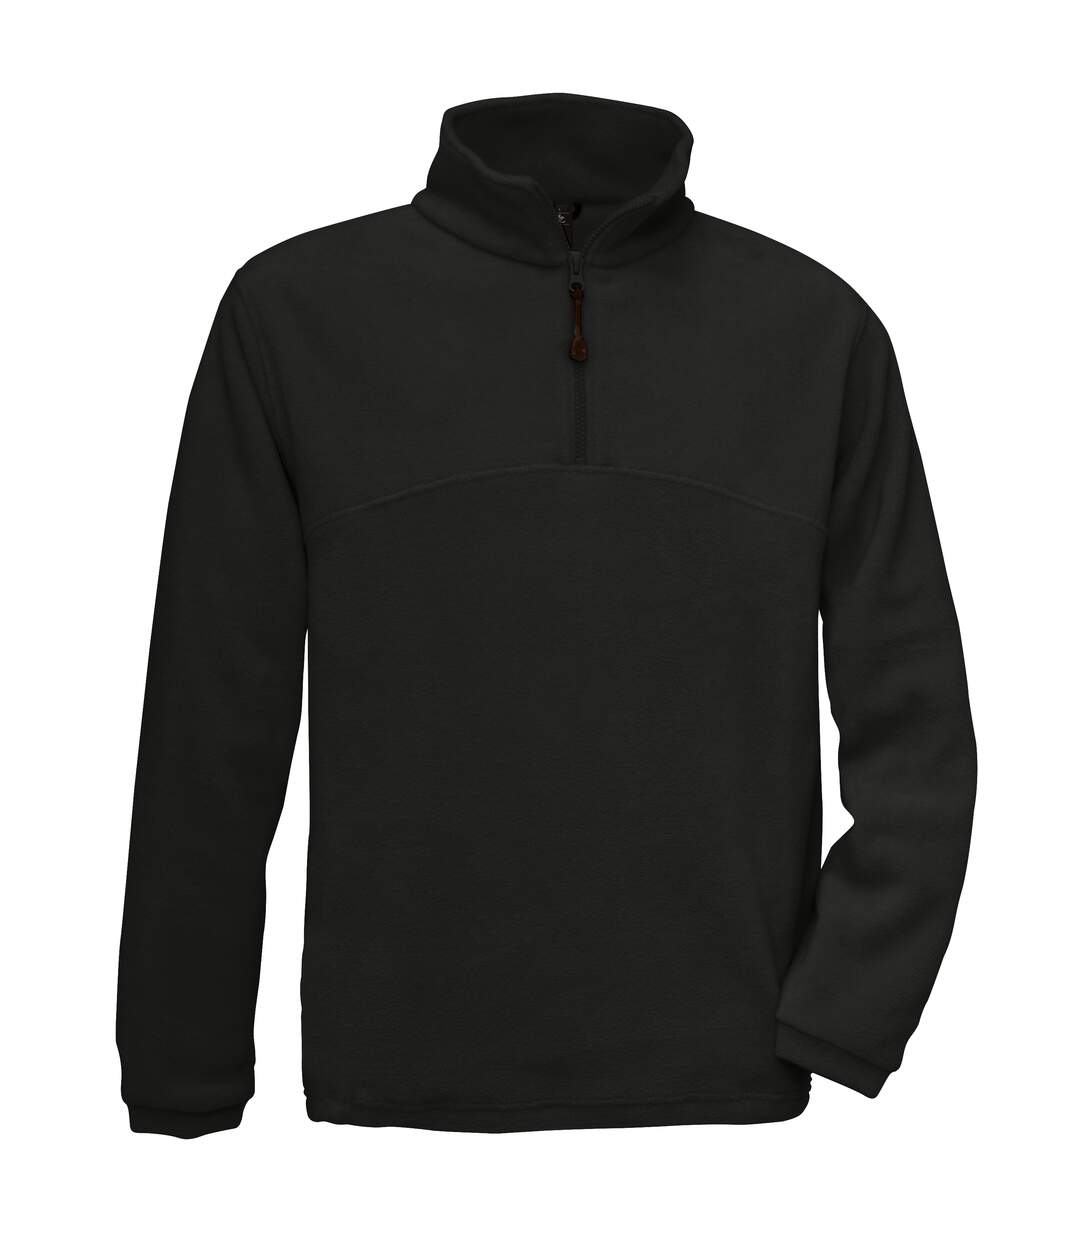 B&C Mens Highlander+ 1/4 Zip Fleece Top (Red) - UTRW3031